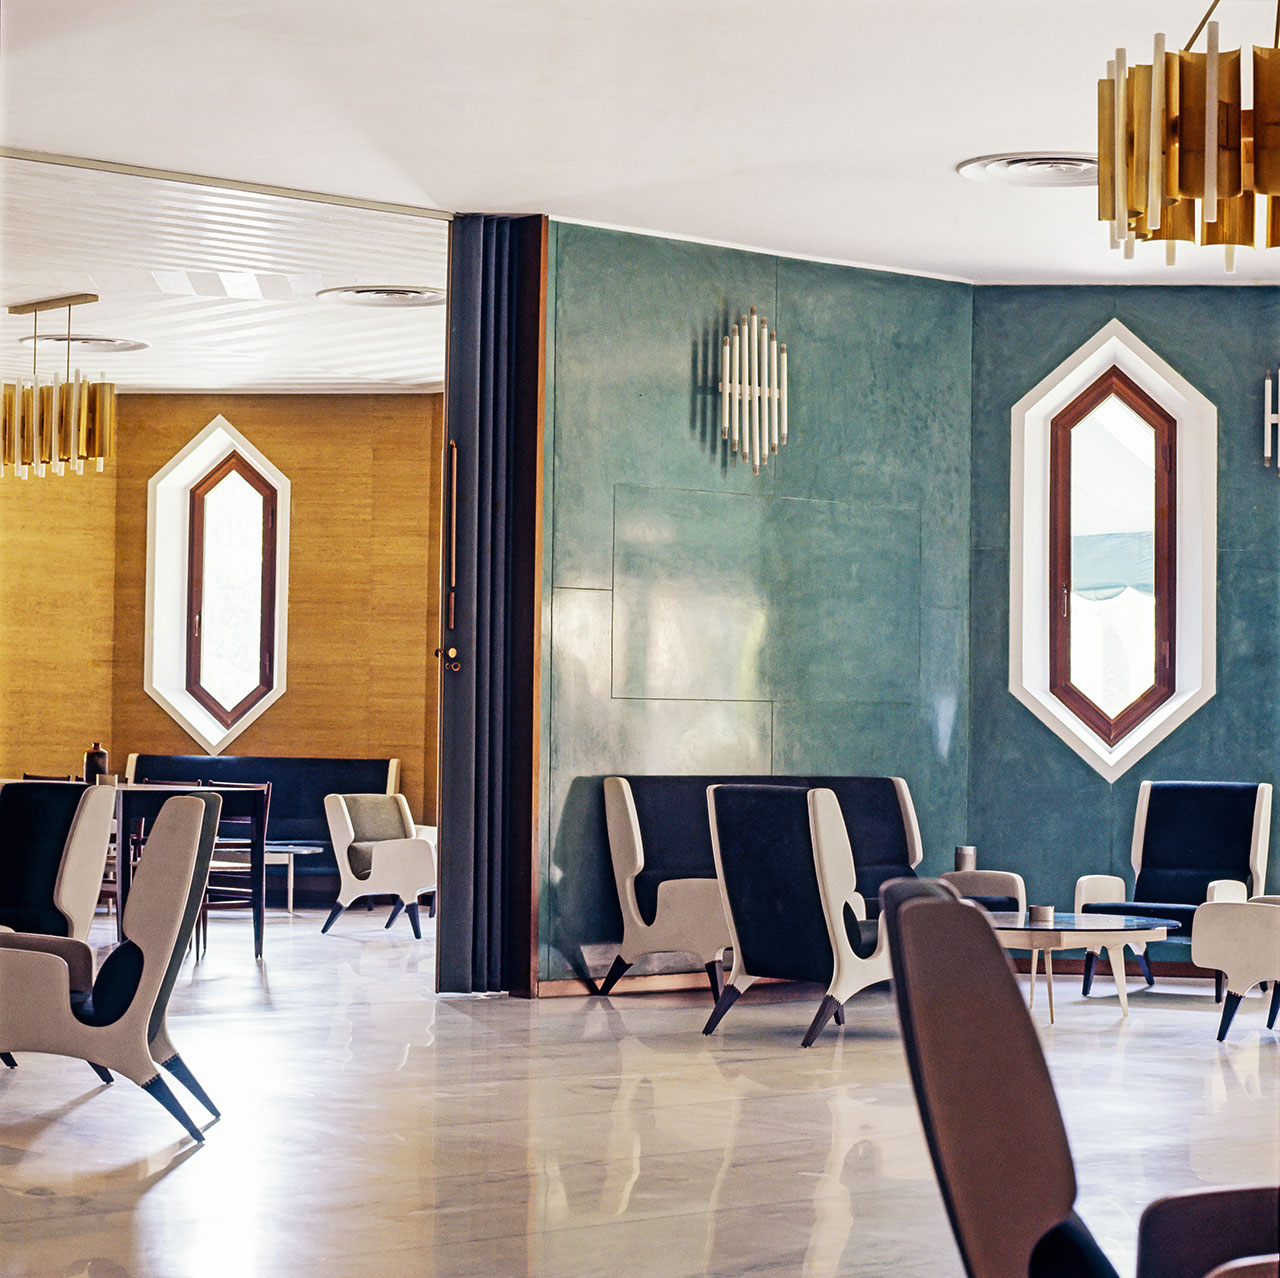 "Hotel Parco dei Principi, Rome, 1961–64. View of the lobby. The walls are covered with ""Grass Cloth"" wallpaper by Braendli and teal-green ""Sigmulto"" stucco by Sigma. The space is furnished with armchairs and sofas (model 899) and coffee tables produced by Cassina. Wall sconces and ceiling lights were designed by Ponti with Emanuele Ponzio, realized by Candle, 1960. The hexagonal bronze window frames were manufactured by the Del Vecchio factory of Fano. Photo © Gio Ponti Archives/ Historical Archive of Ponti's Heirs."